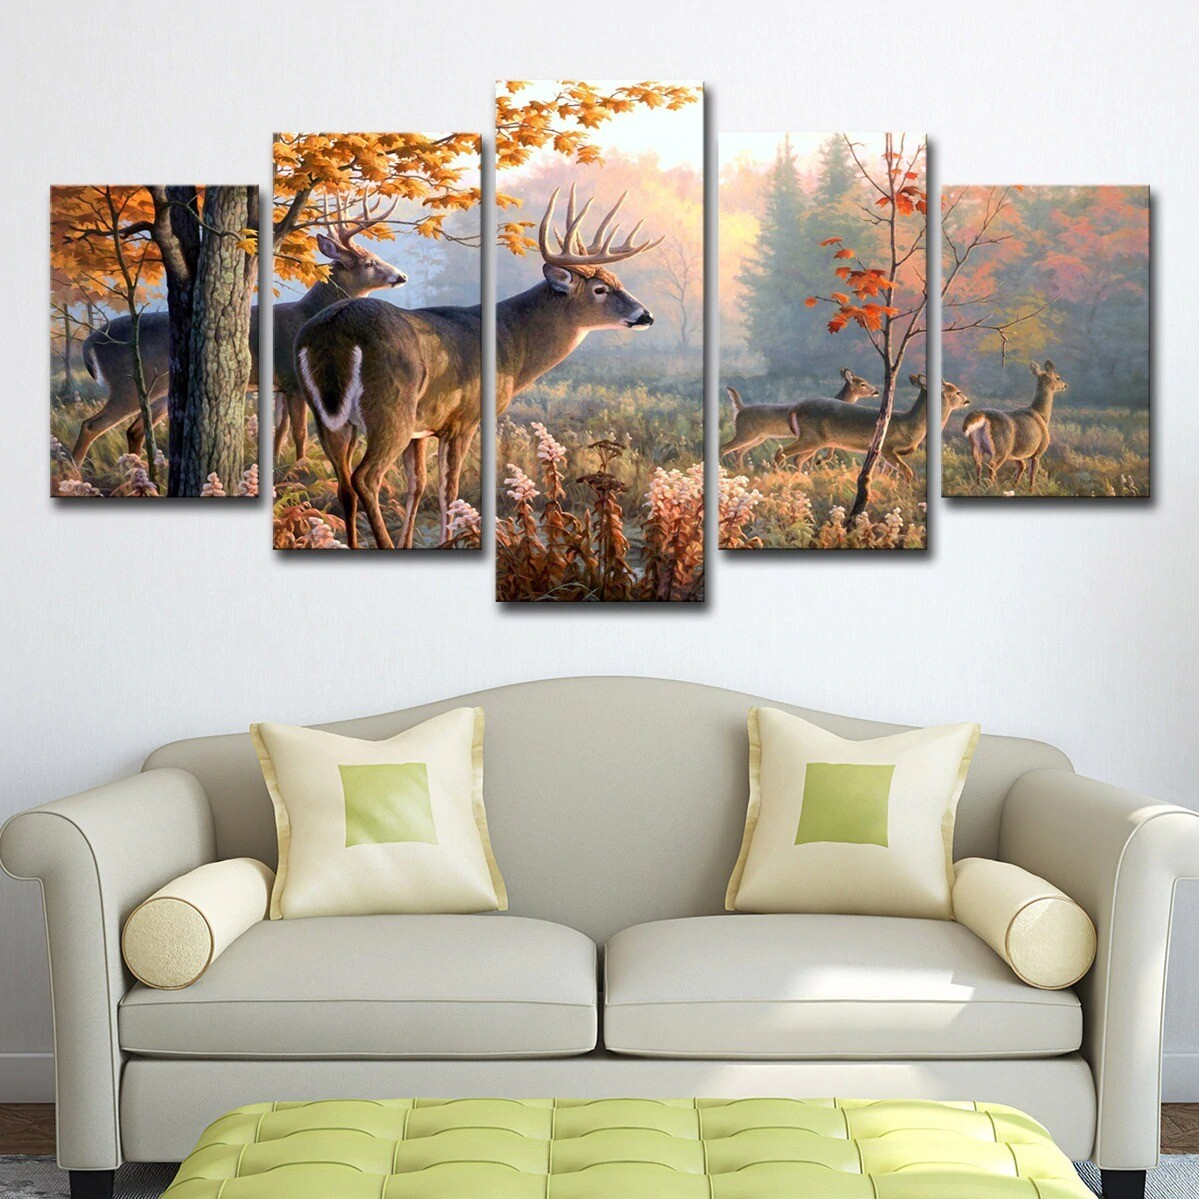 Forest Deer Landscape - 5 Panel Canvas Print Wall Art Set